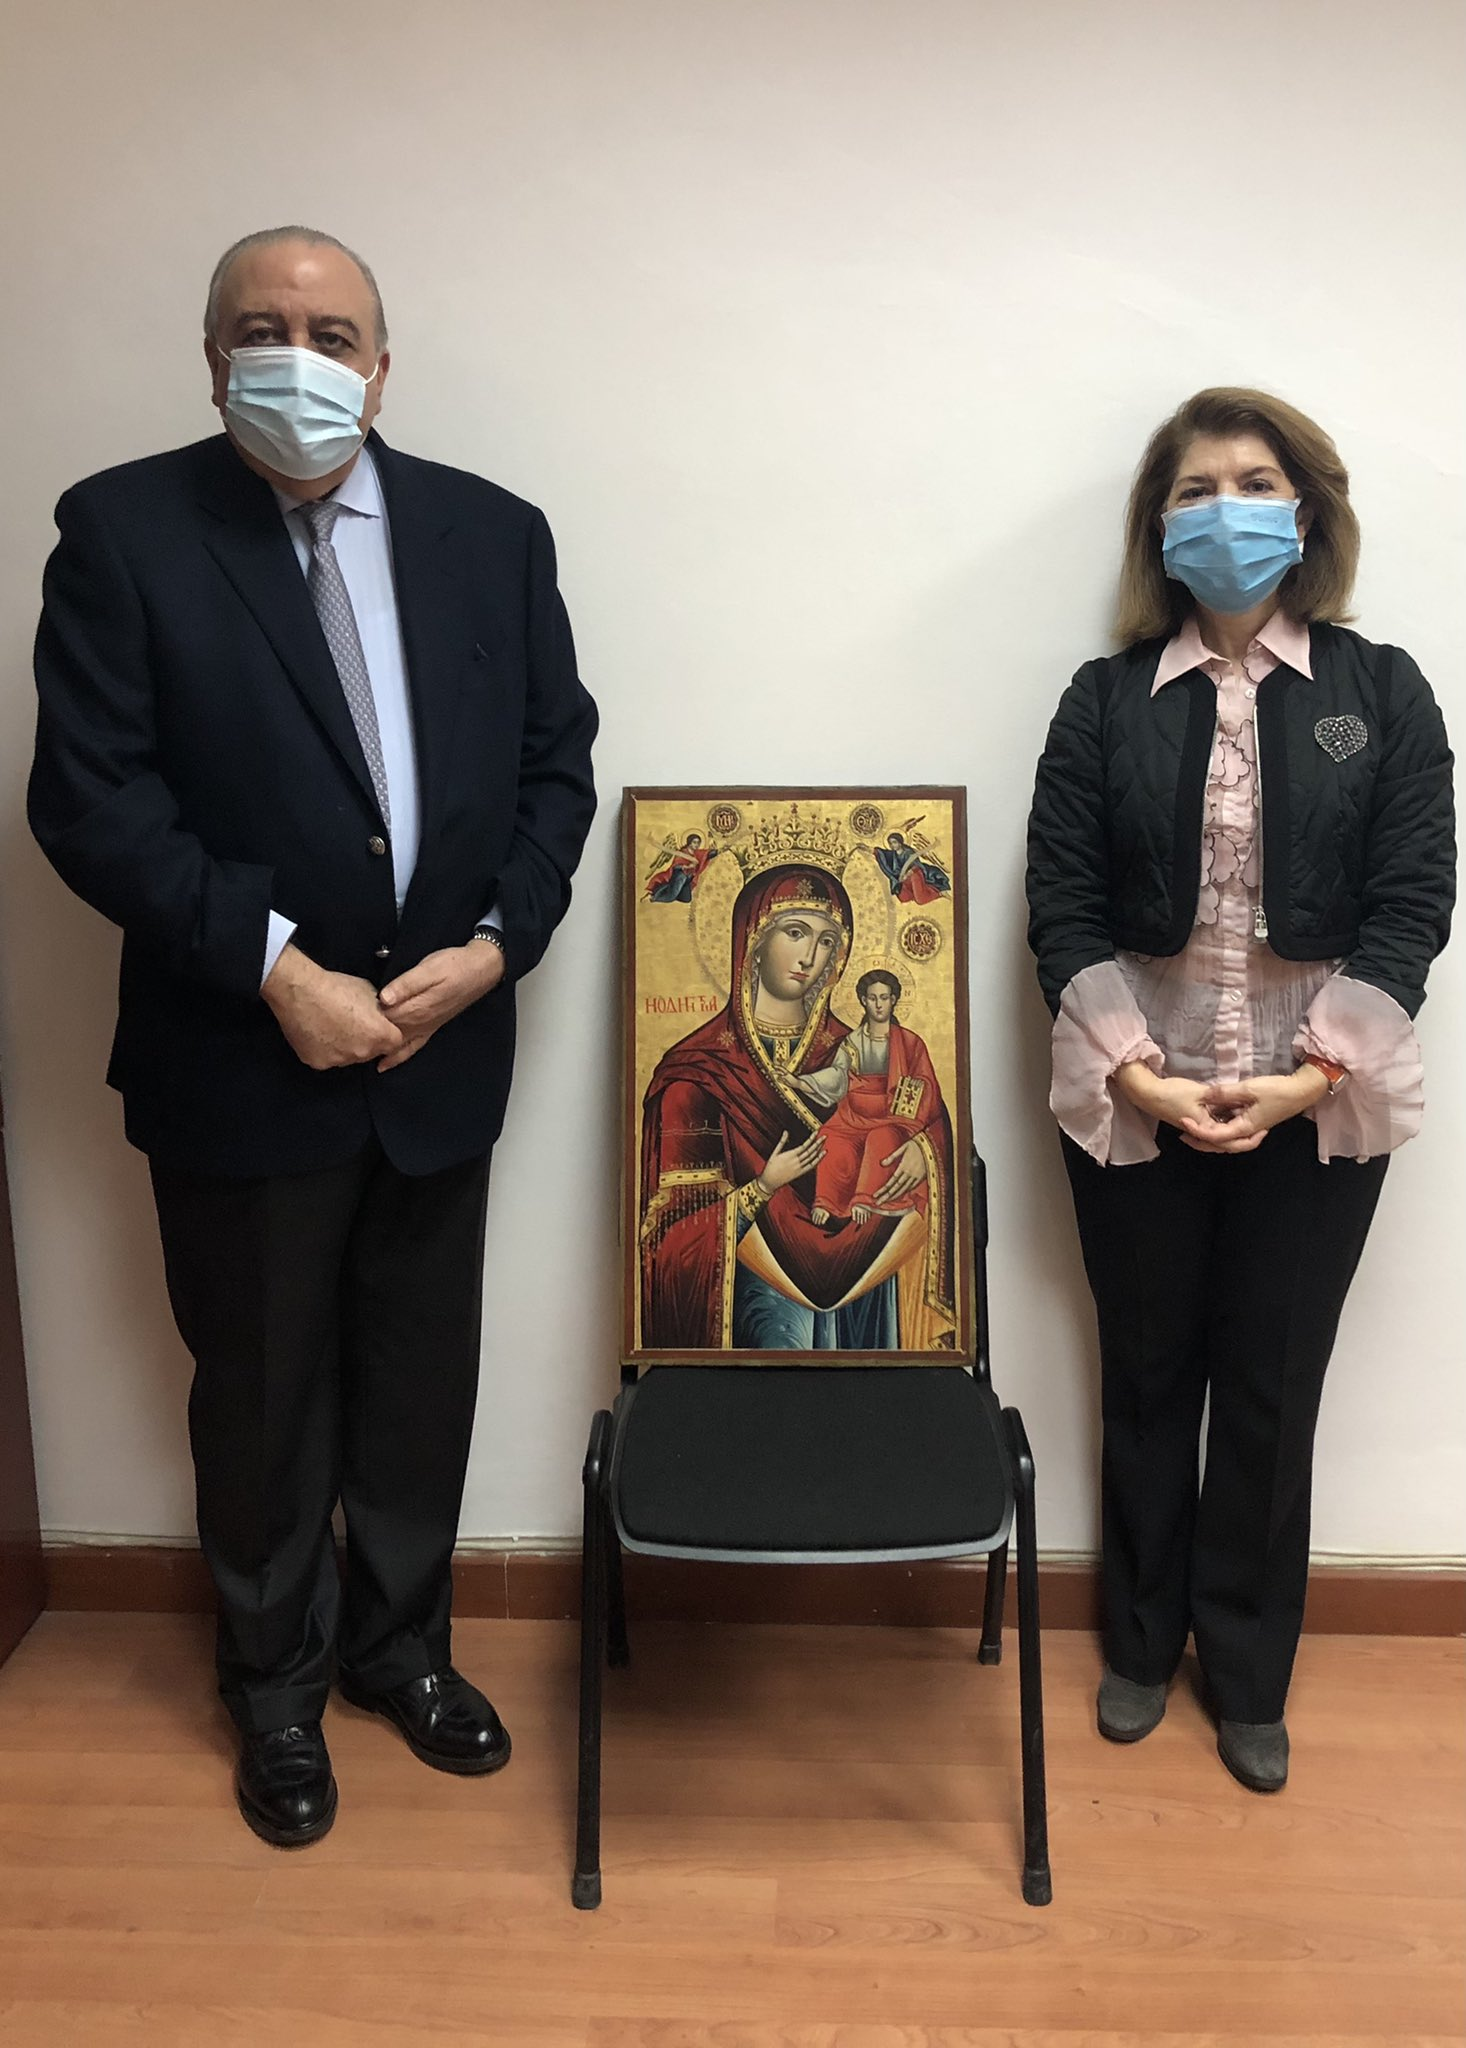 The icons returned by Lebanon were stolen from an exhibition in Athens in 2016.